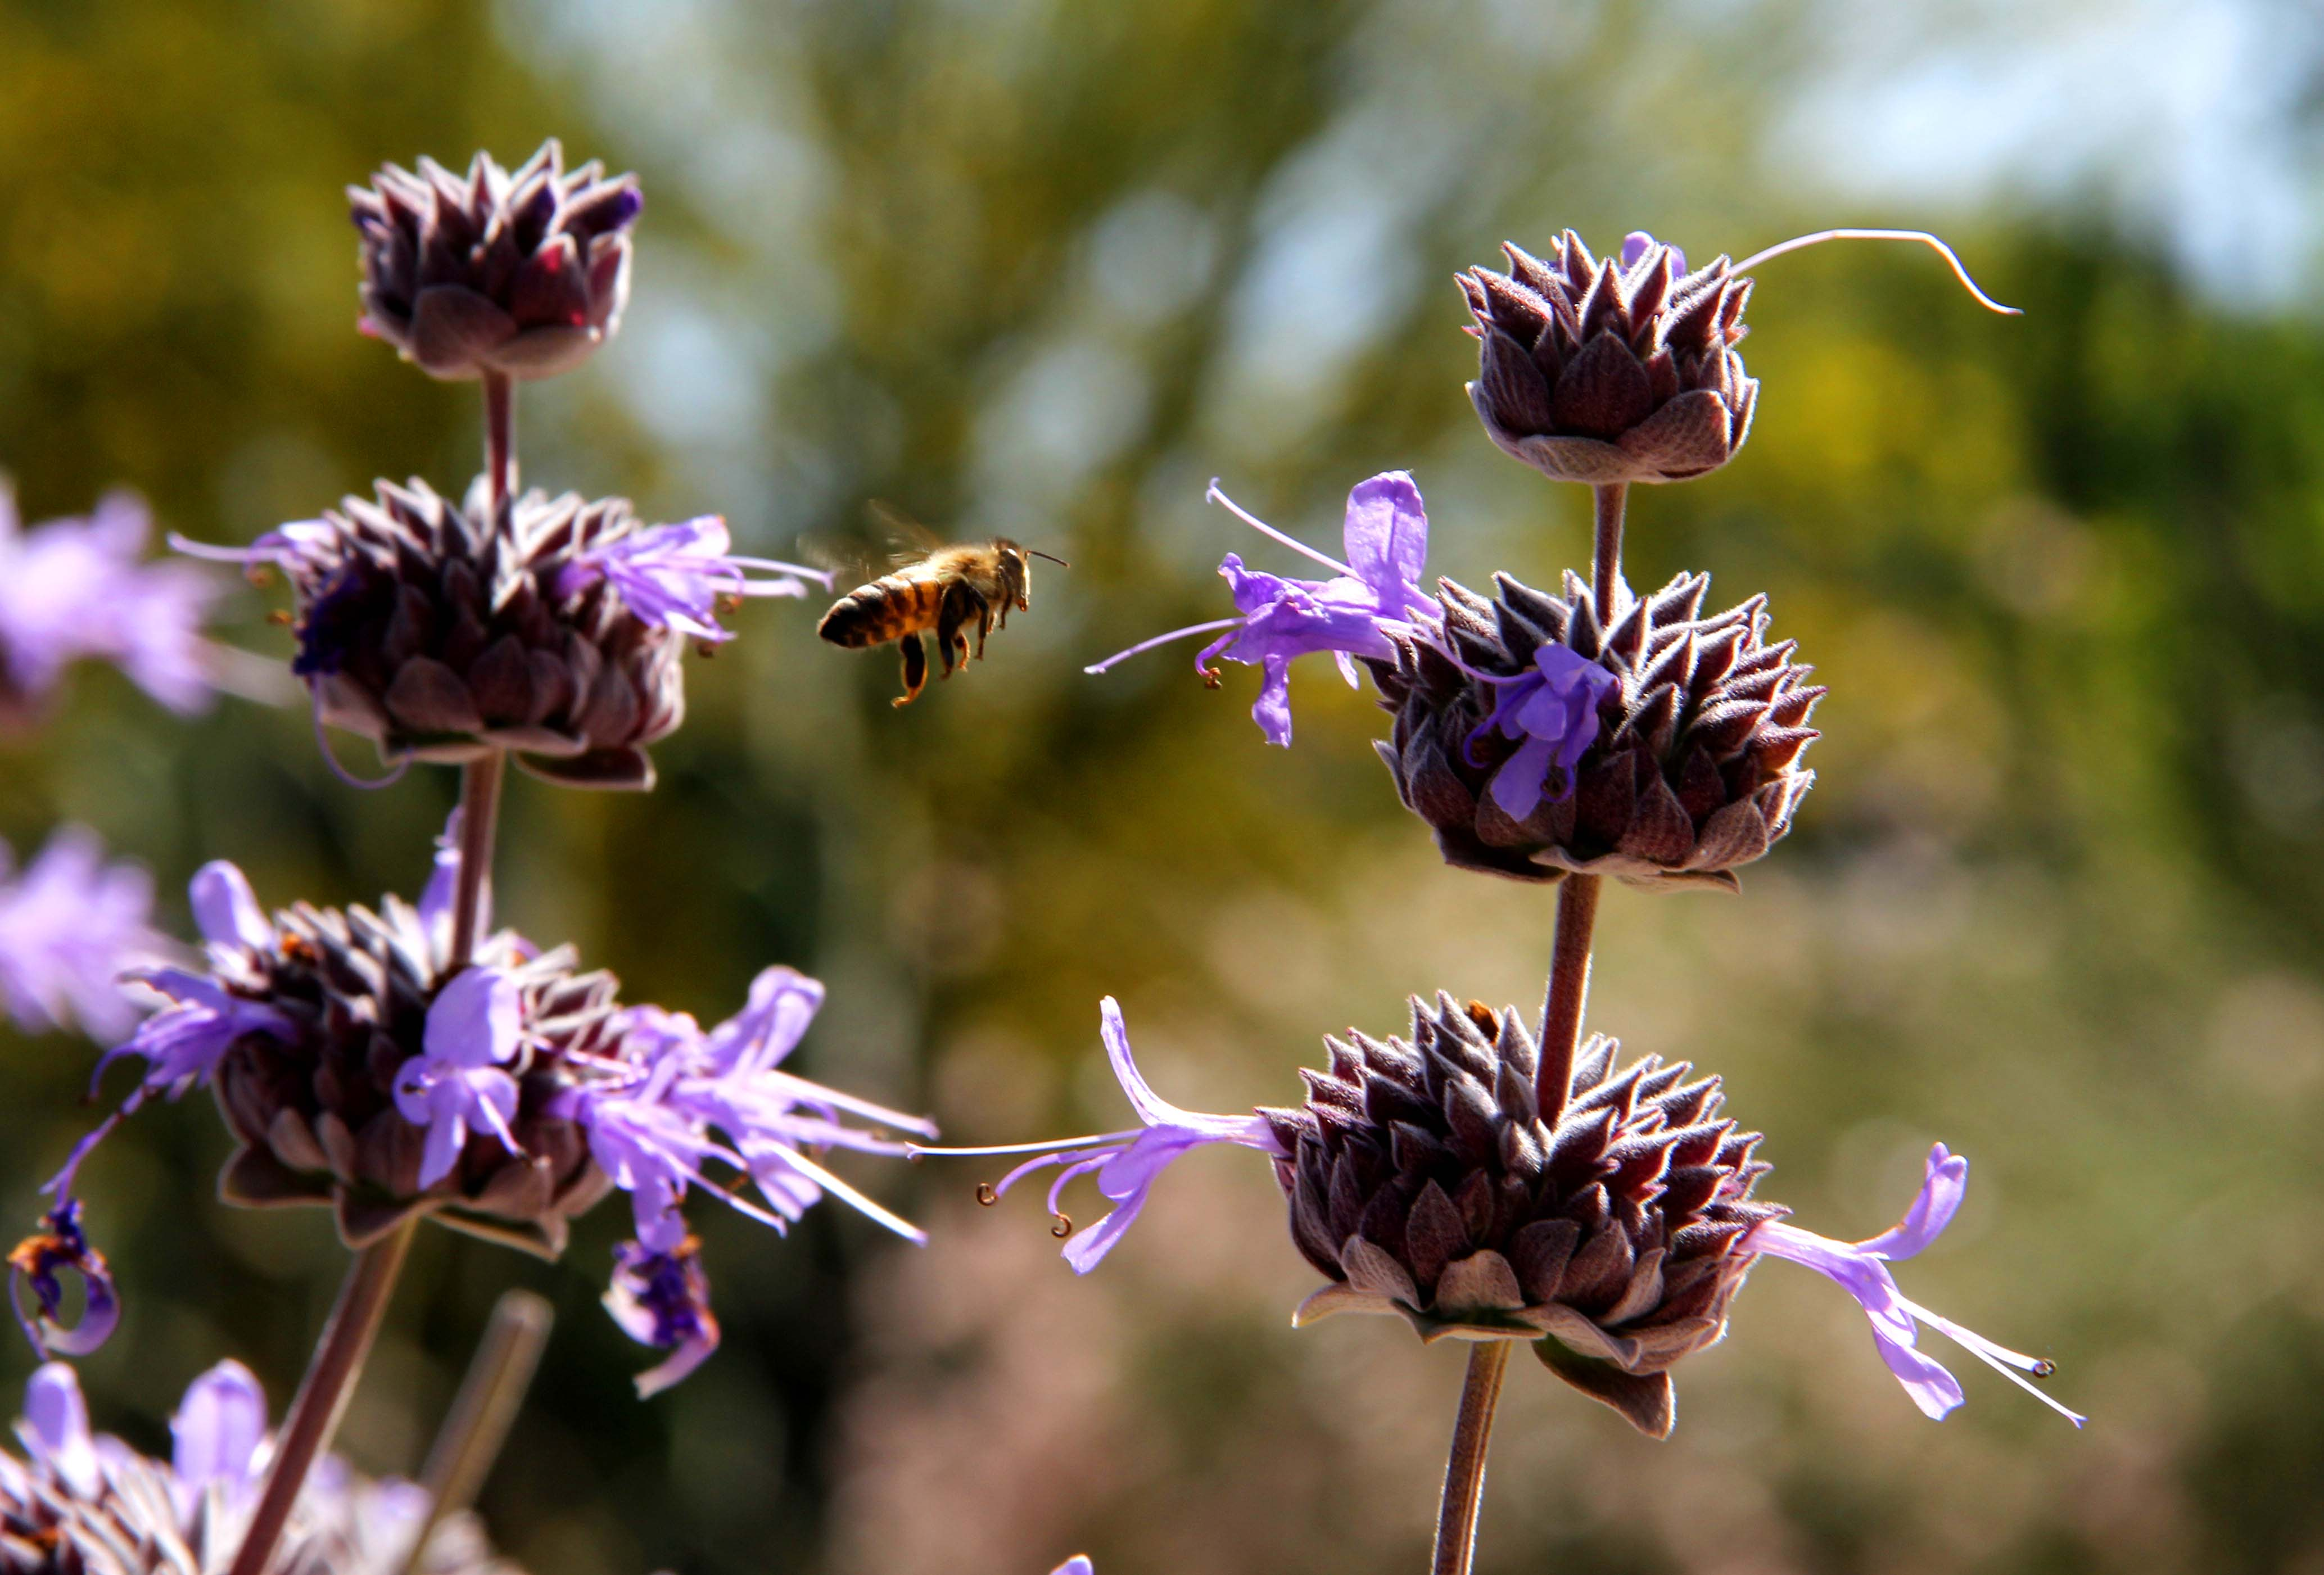 Bees & Flowers at Pierce College, May 2011 | John's Room